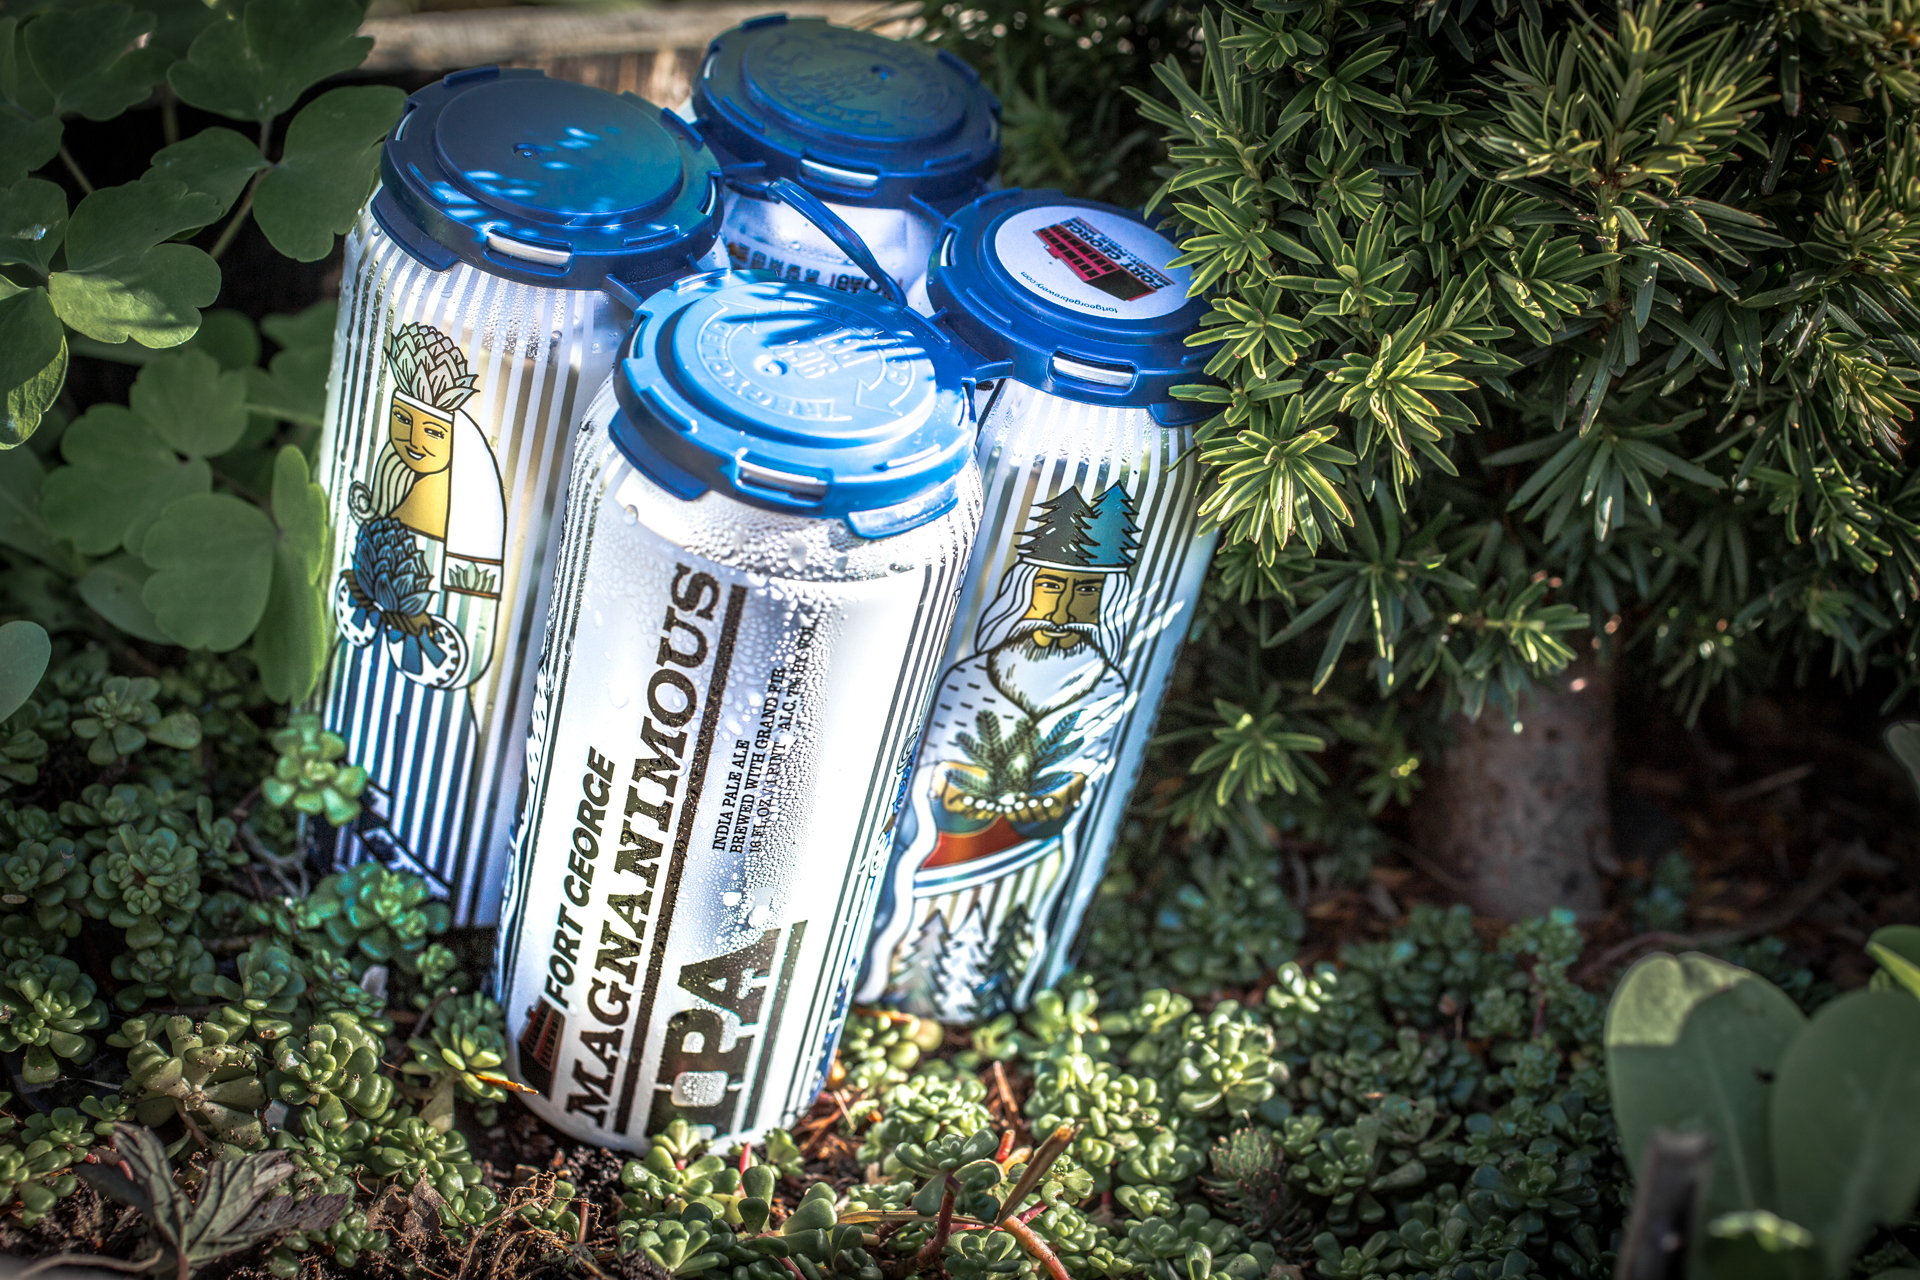 Cans of Magnanimous IPA that feature Jana and Tim Ensign. (image courtesy of Fort George Brewery)